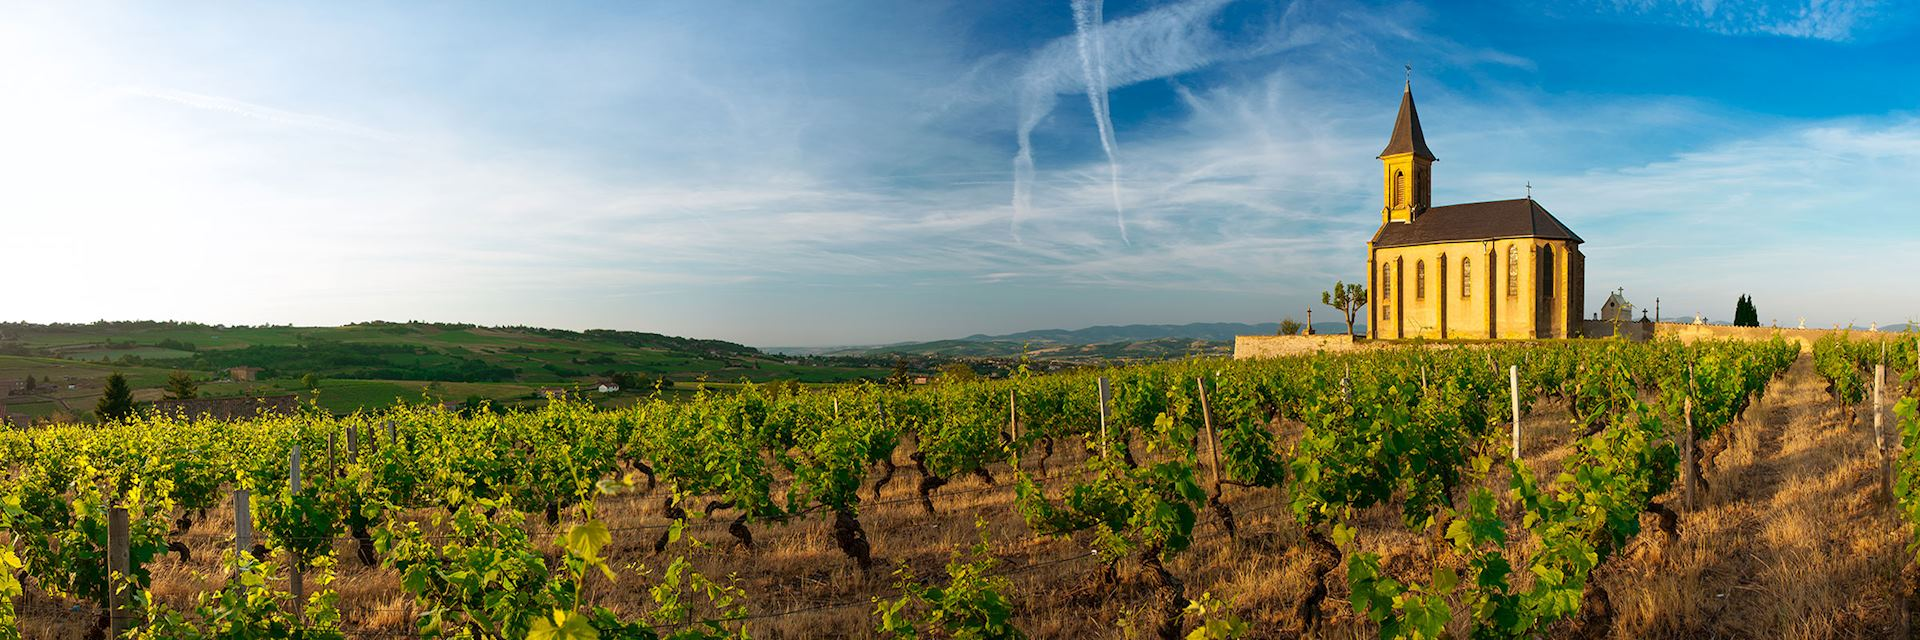 Church and vineyards of Saint Laurent d'Oingt, Beaujolais, France